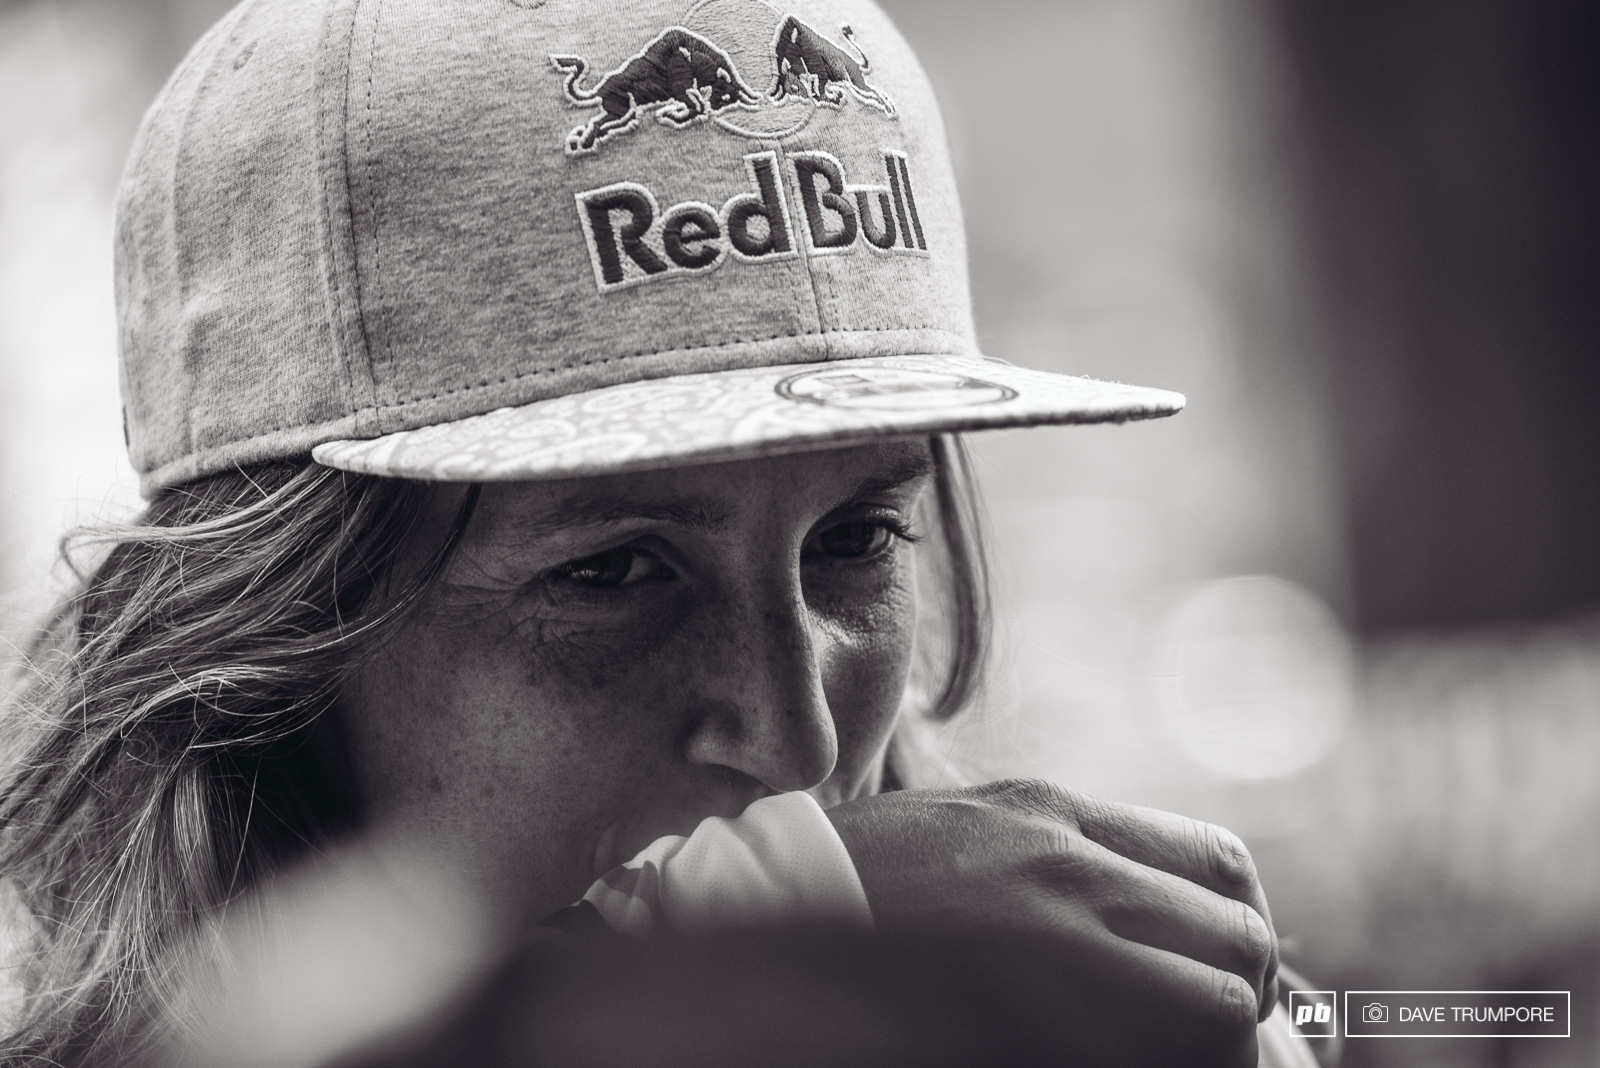 It was a tough one today for Rachel Atherton.